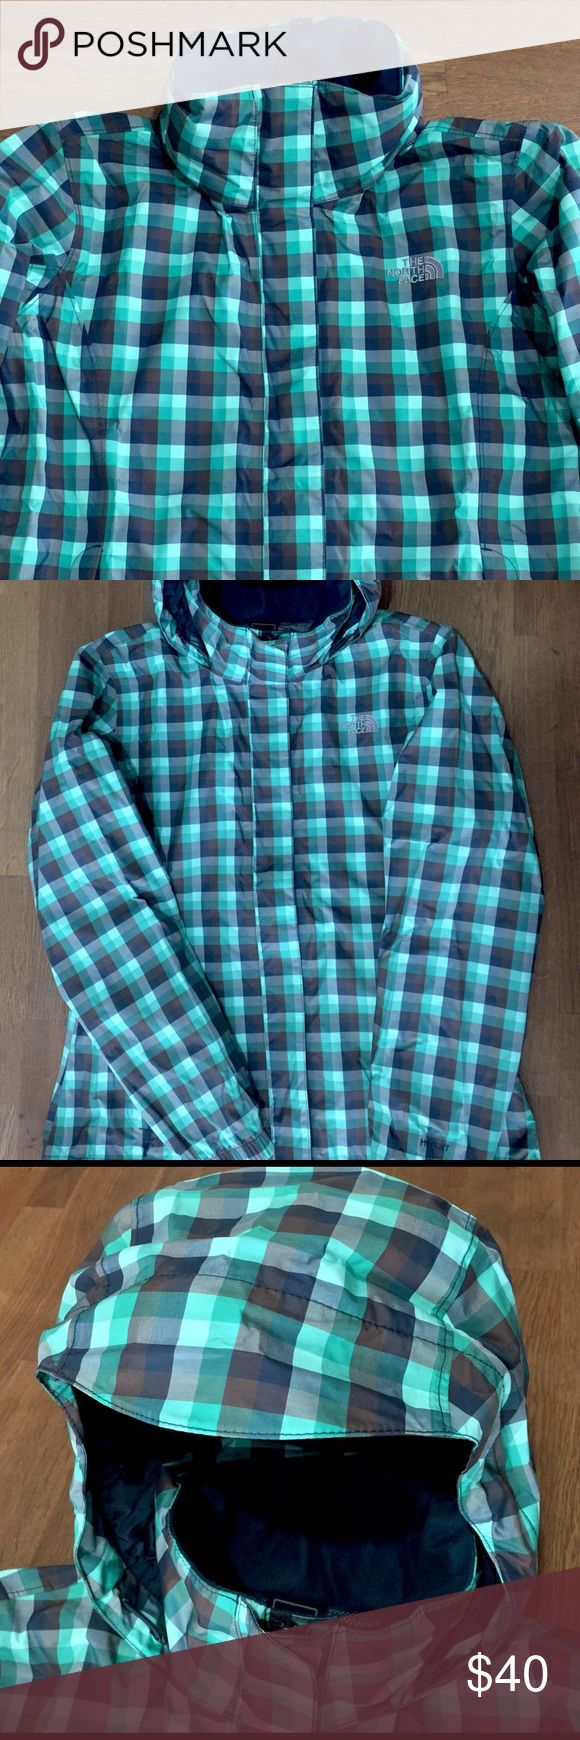 North Face Windbreaker Size M Turquoise, Brown & Navy Blue Check Hooded Windbreaker Jacket North Face Jackets & Coats Utility Jackets